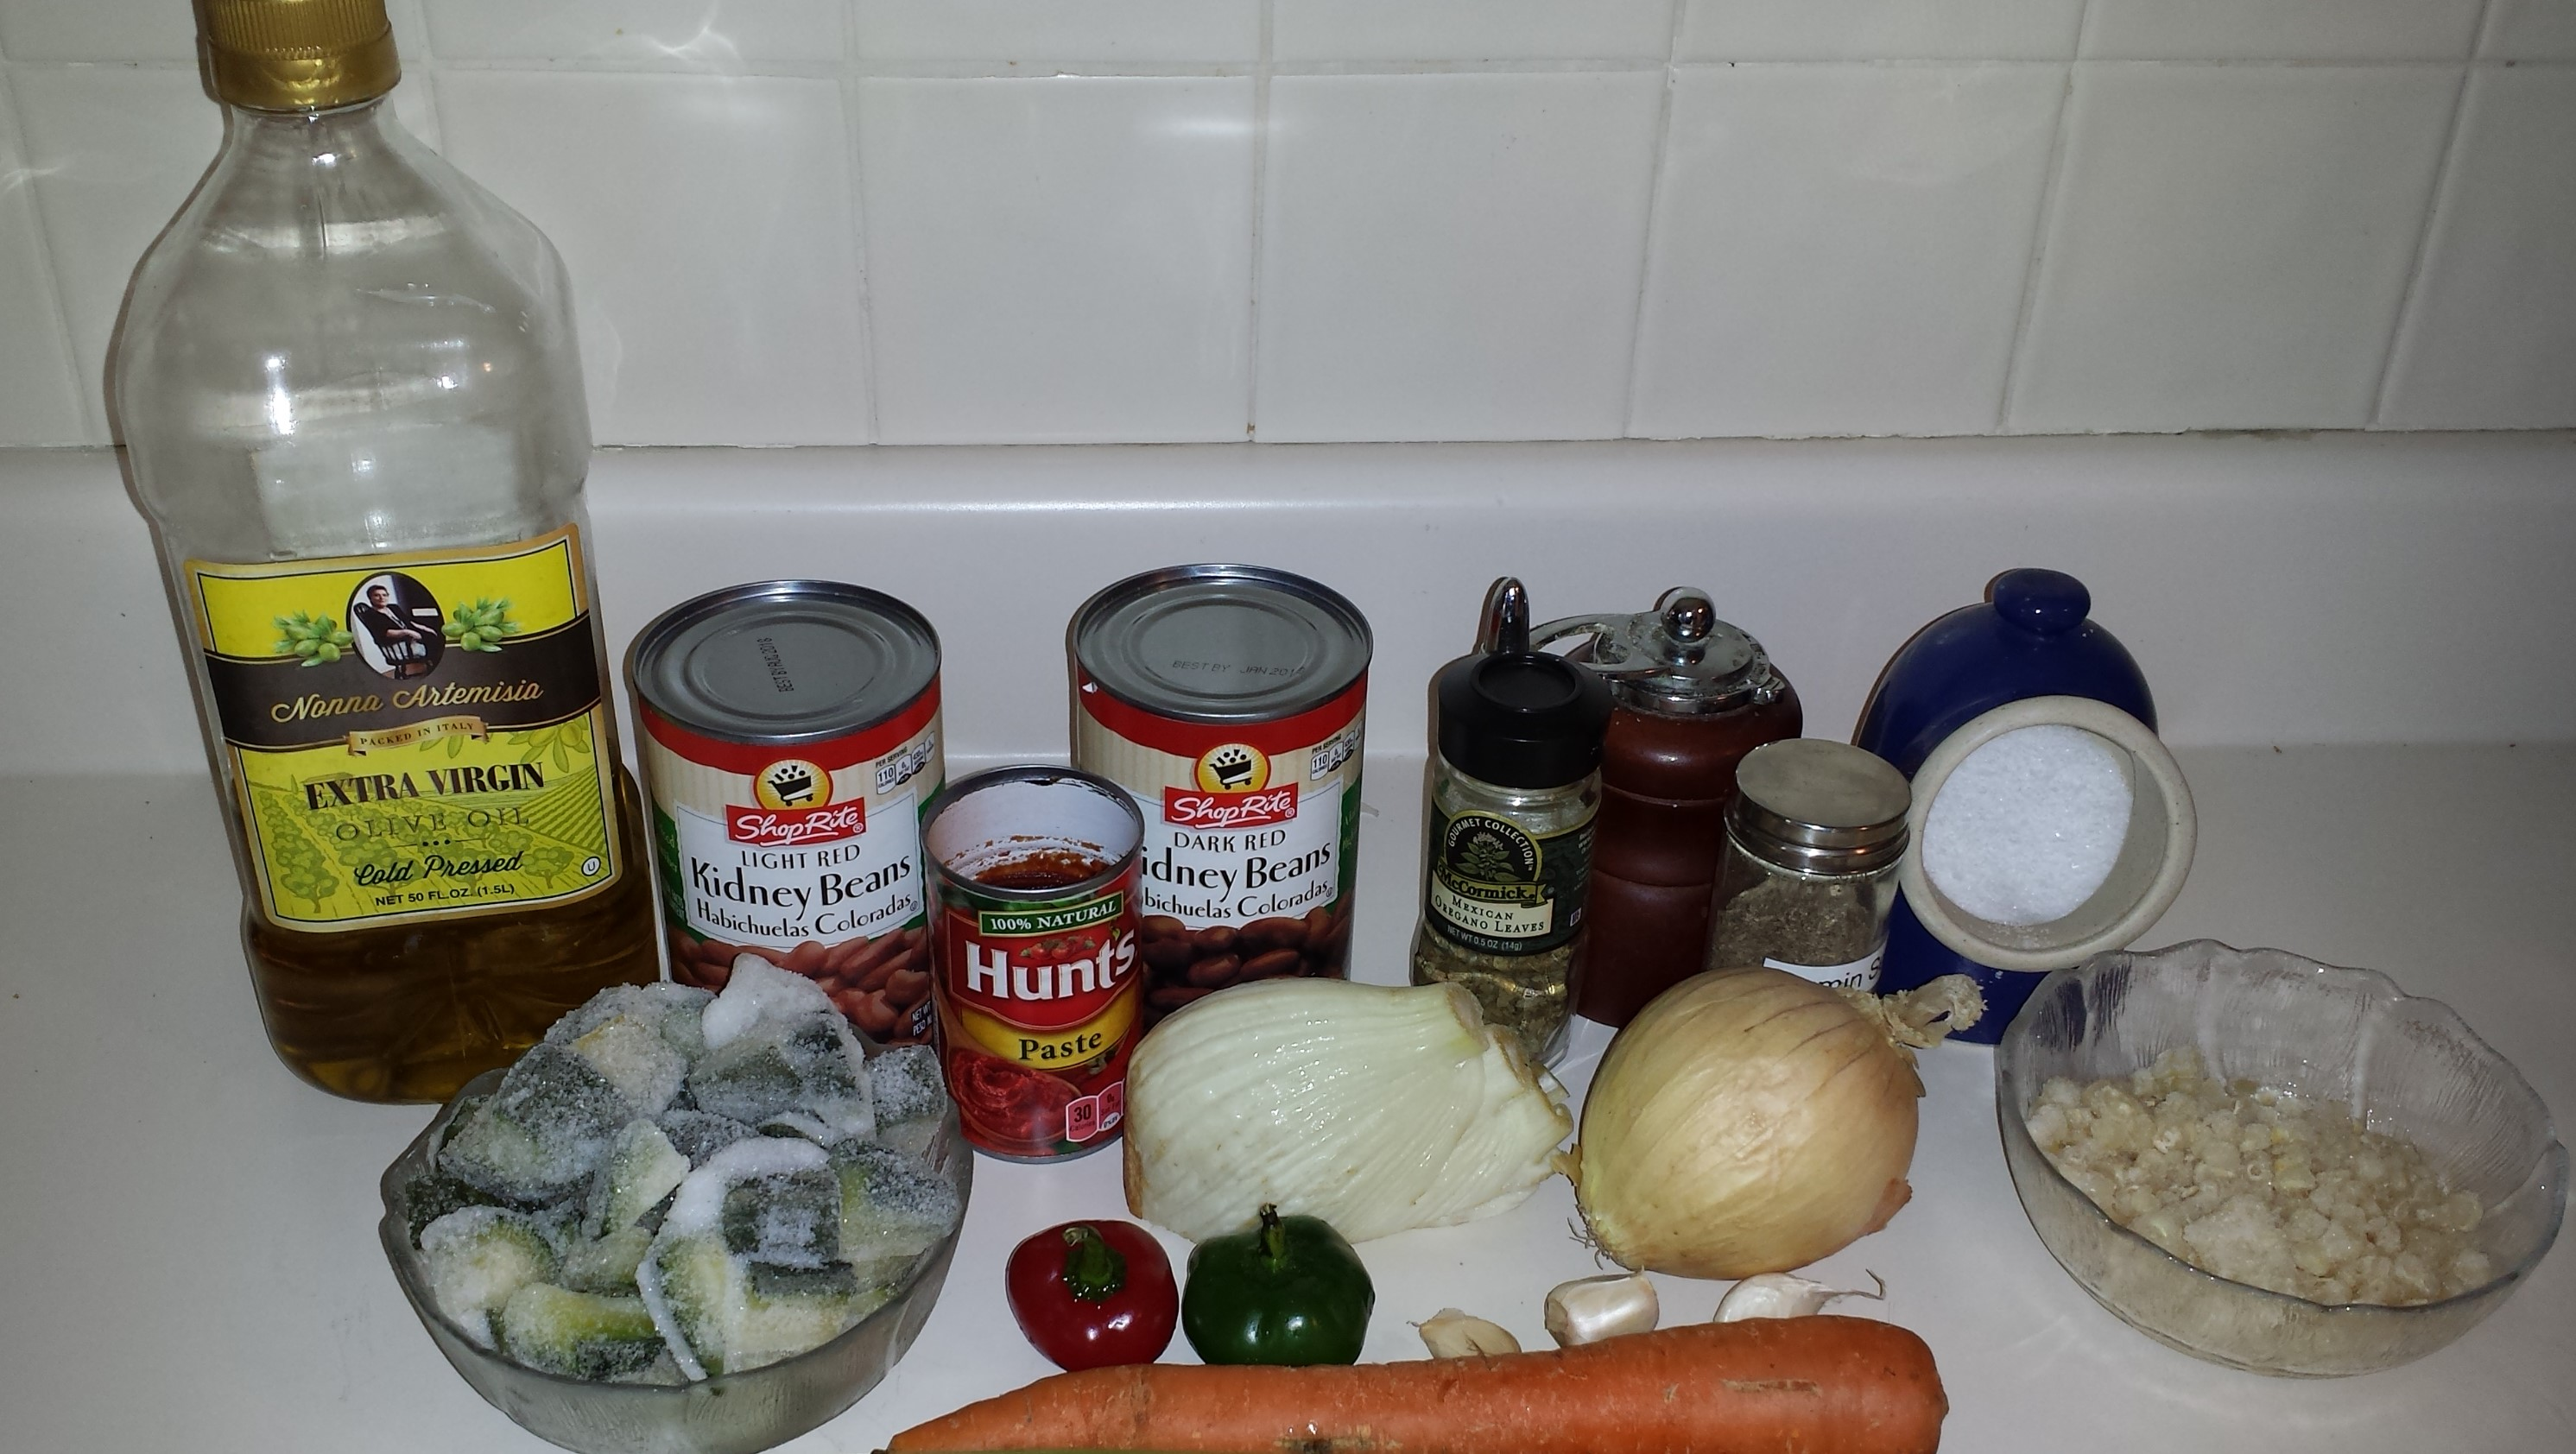 Ingredients for 3 Sisters Chili